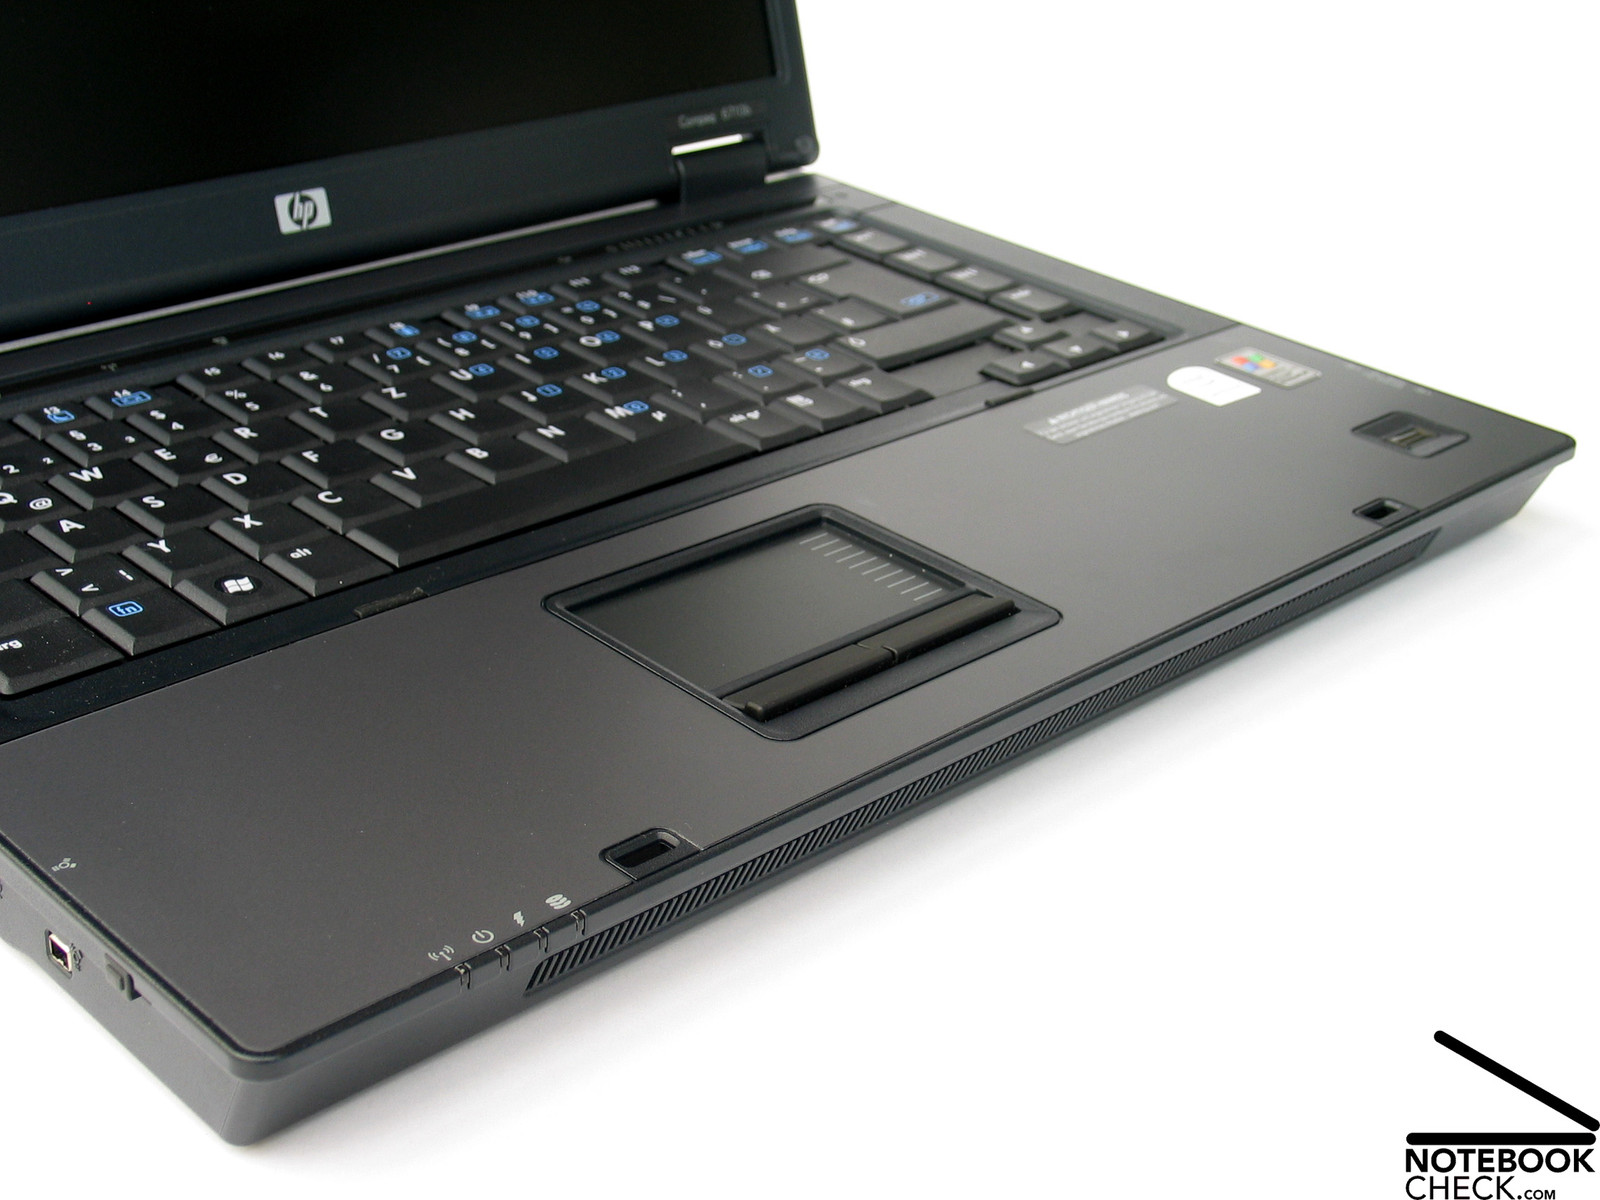 HP COMPAQ 6710B NOTEBOOK DRIVERS DOWNLOAD FREE